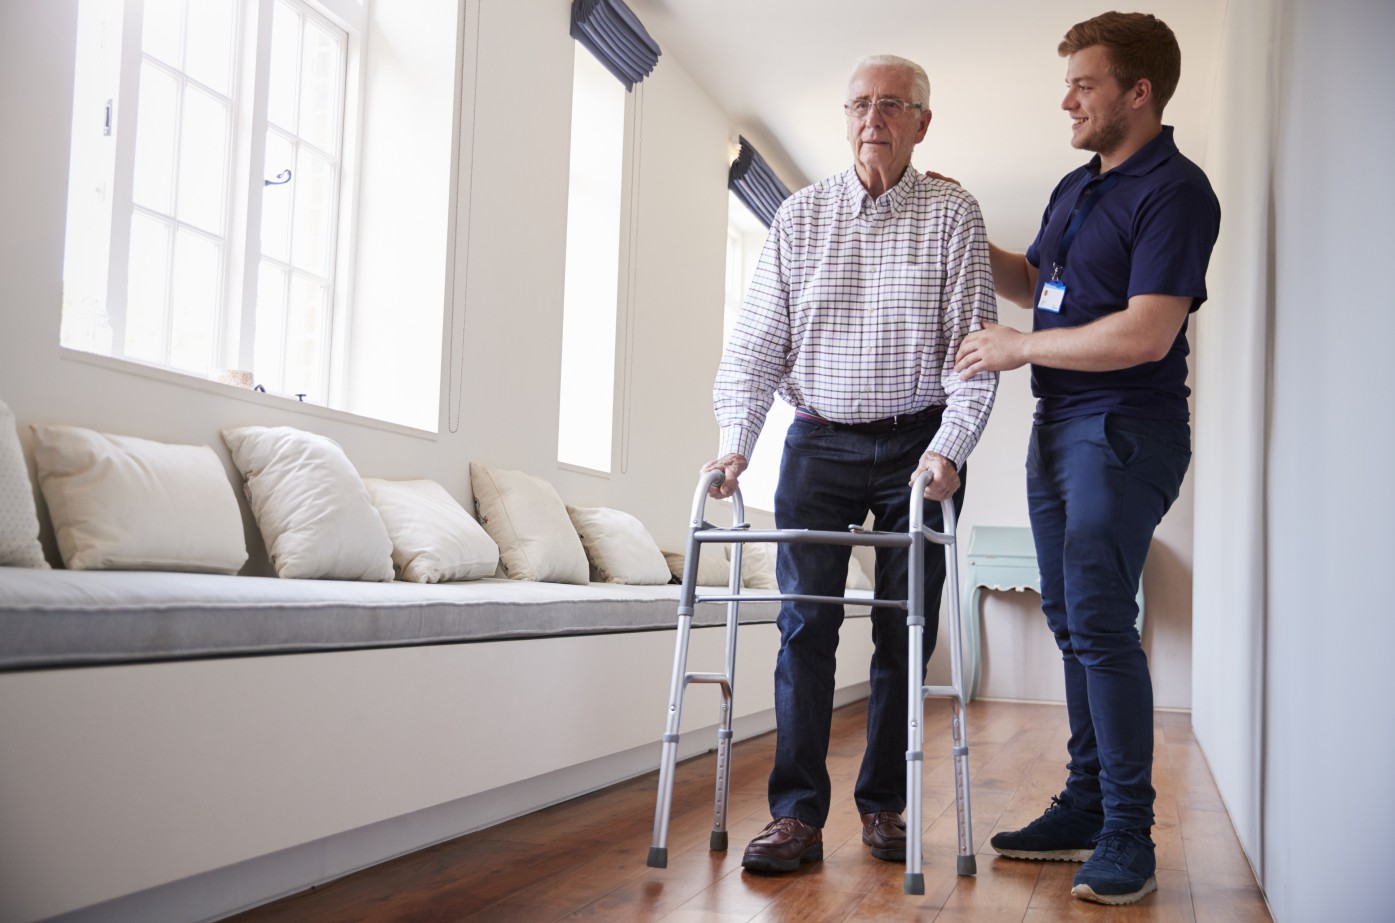 Helping vulnerable patients manage their mobility -